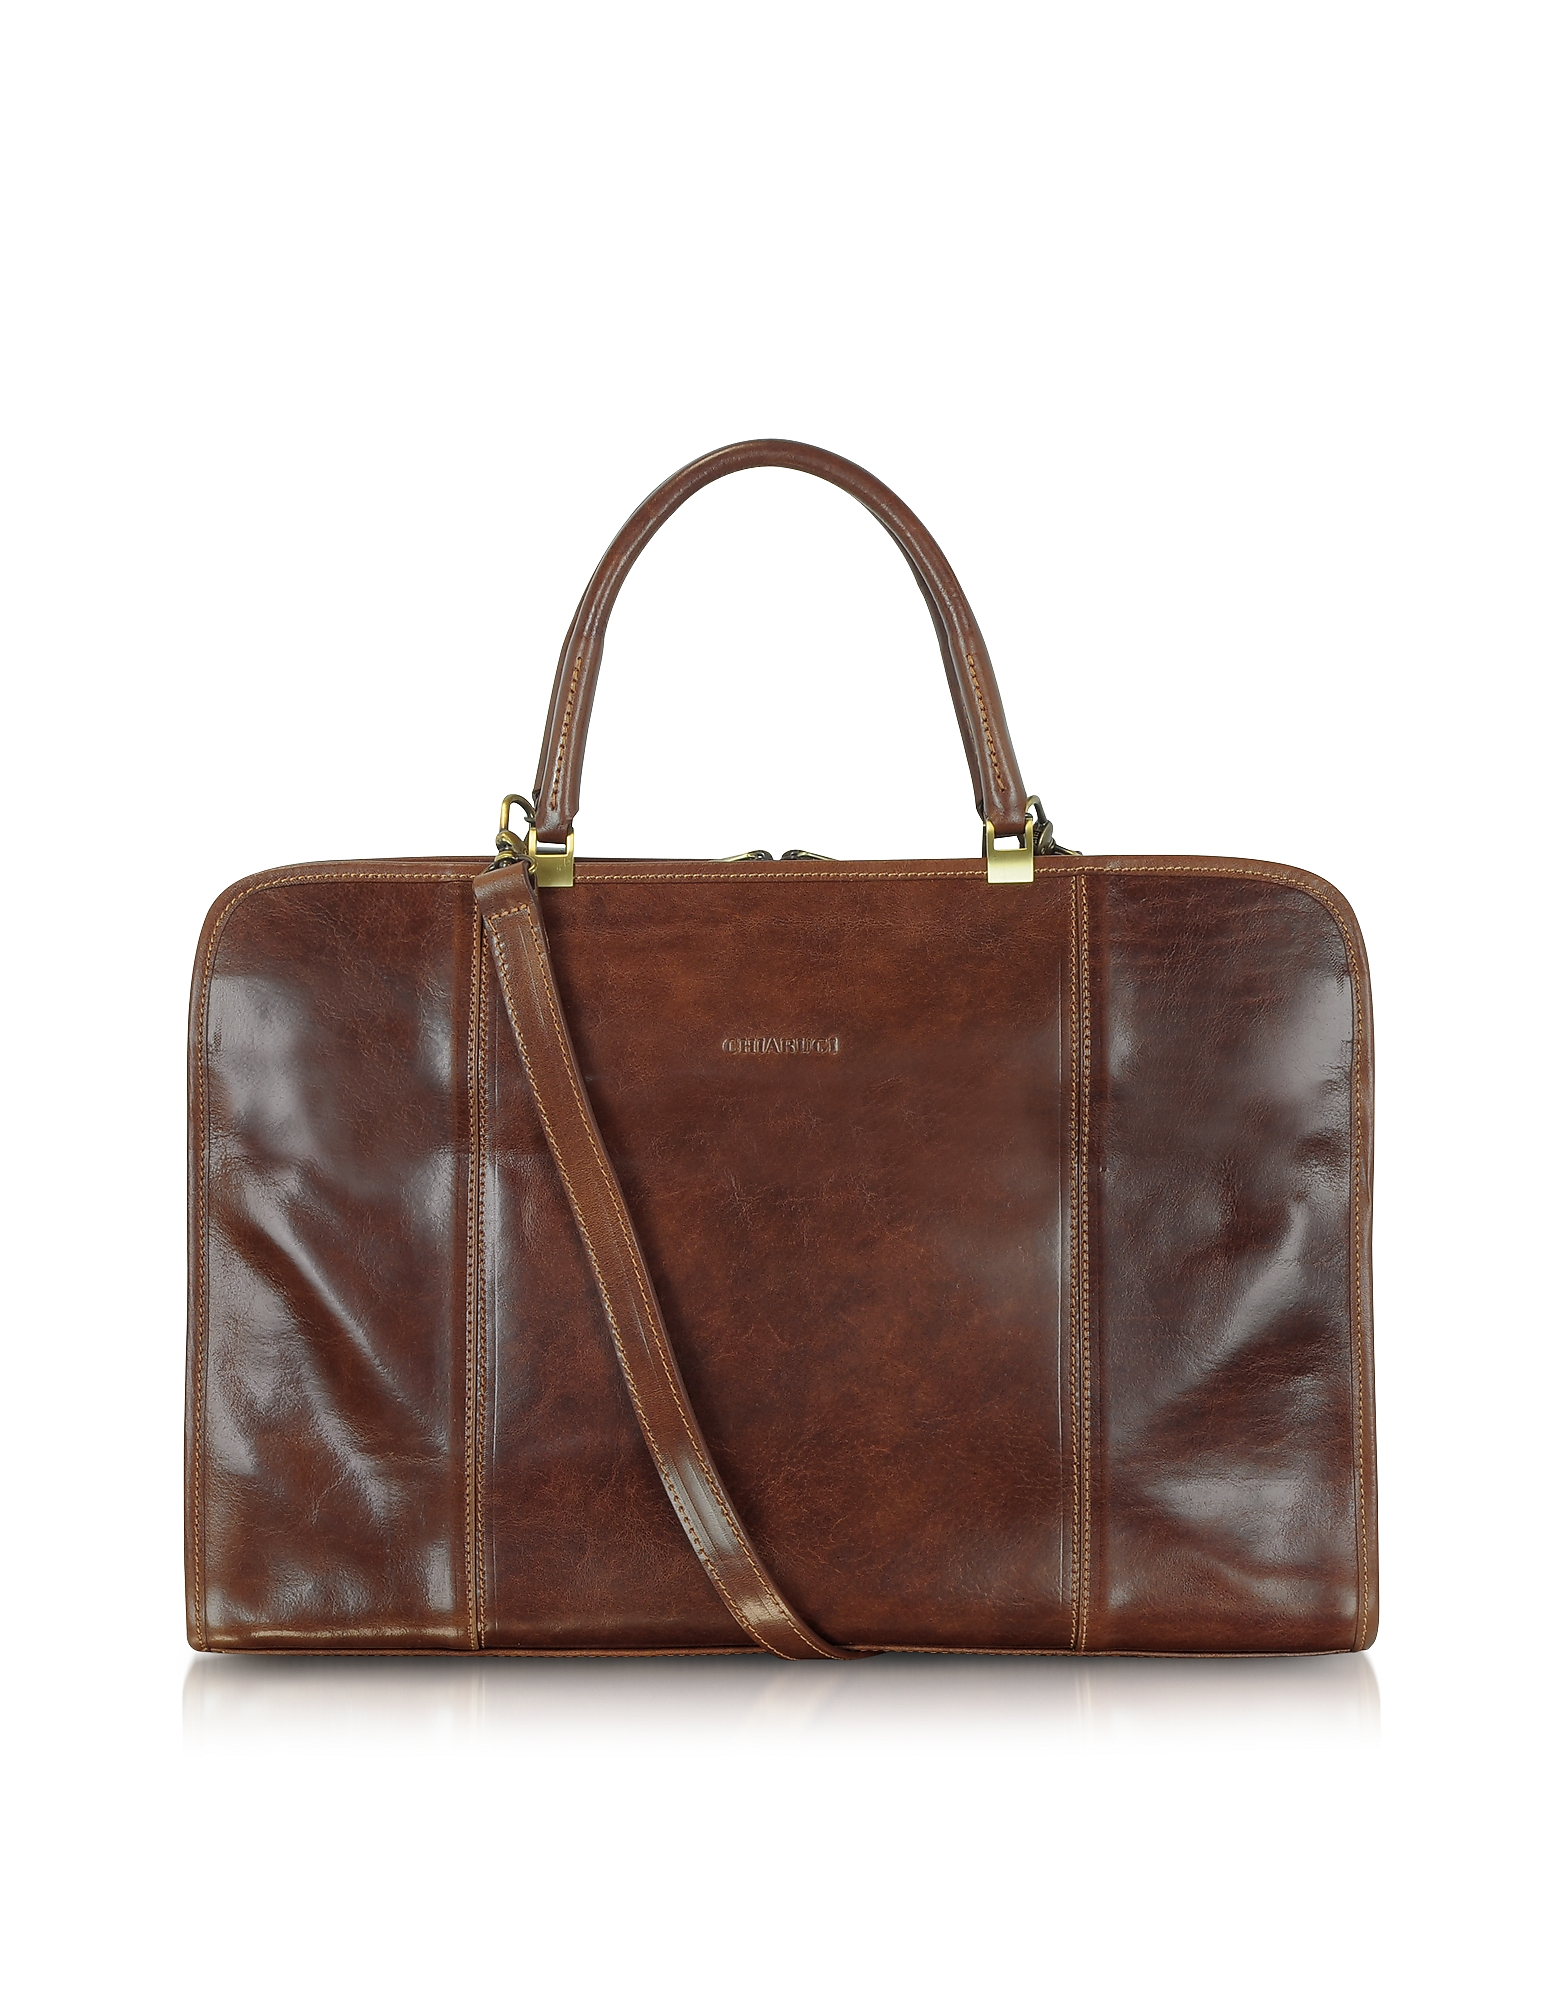 Chiarugi Briefcases, Double Handle Leather Briefcase